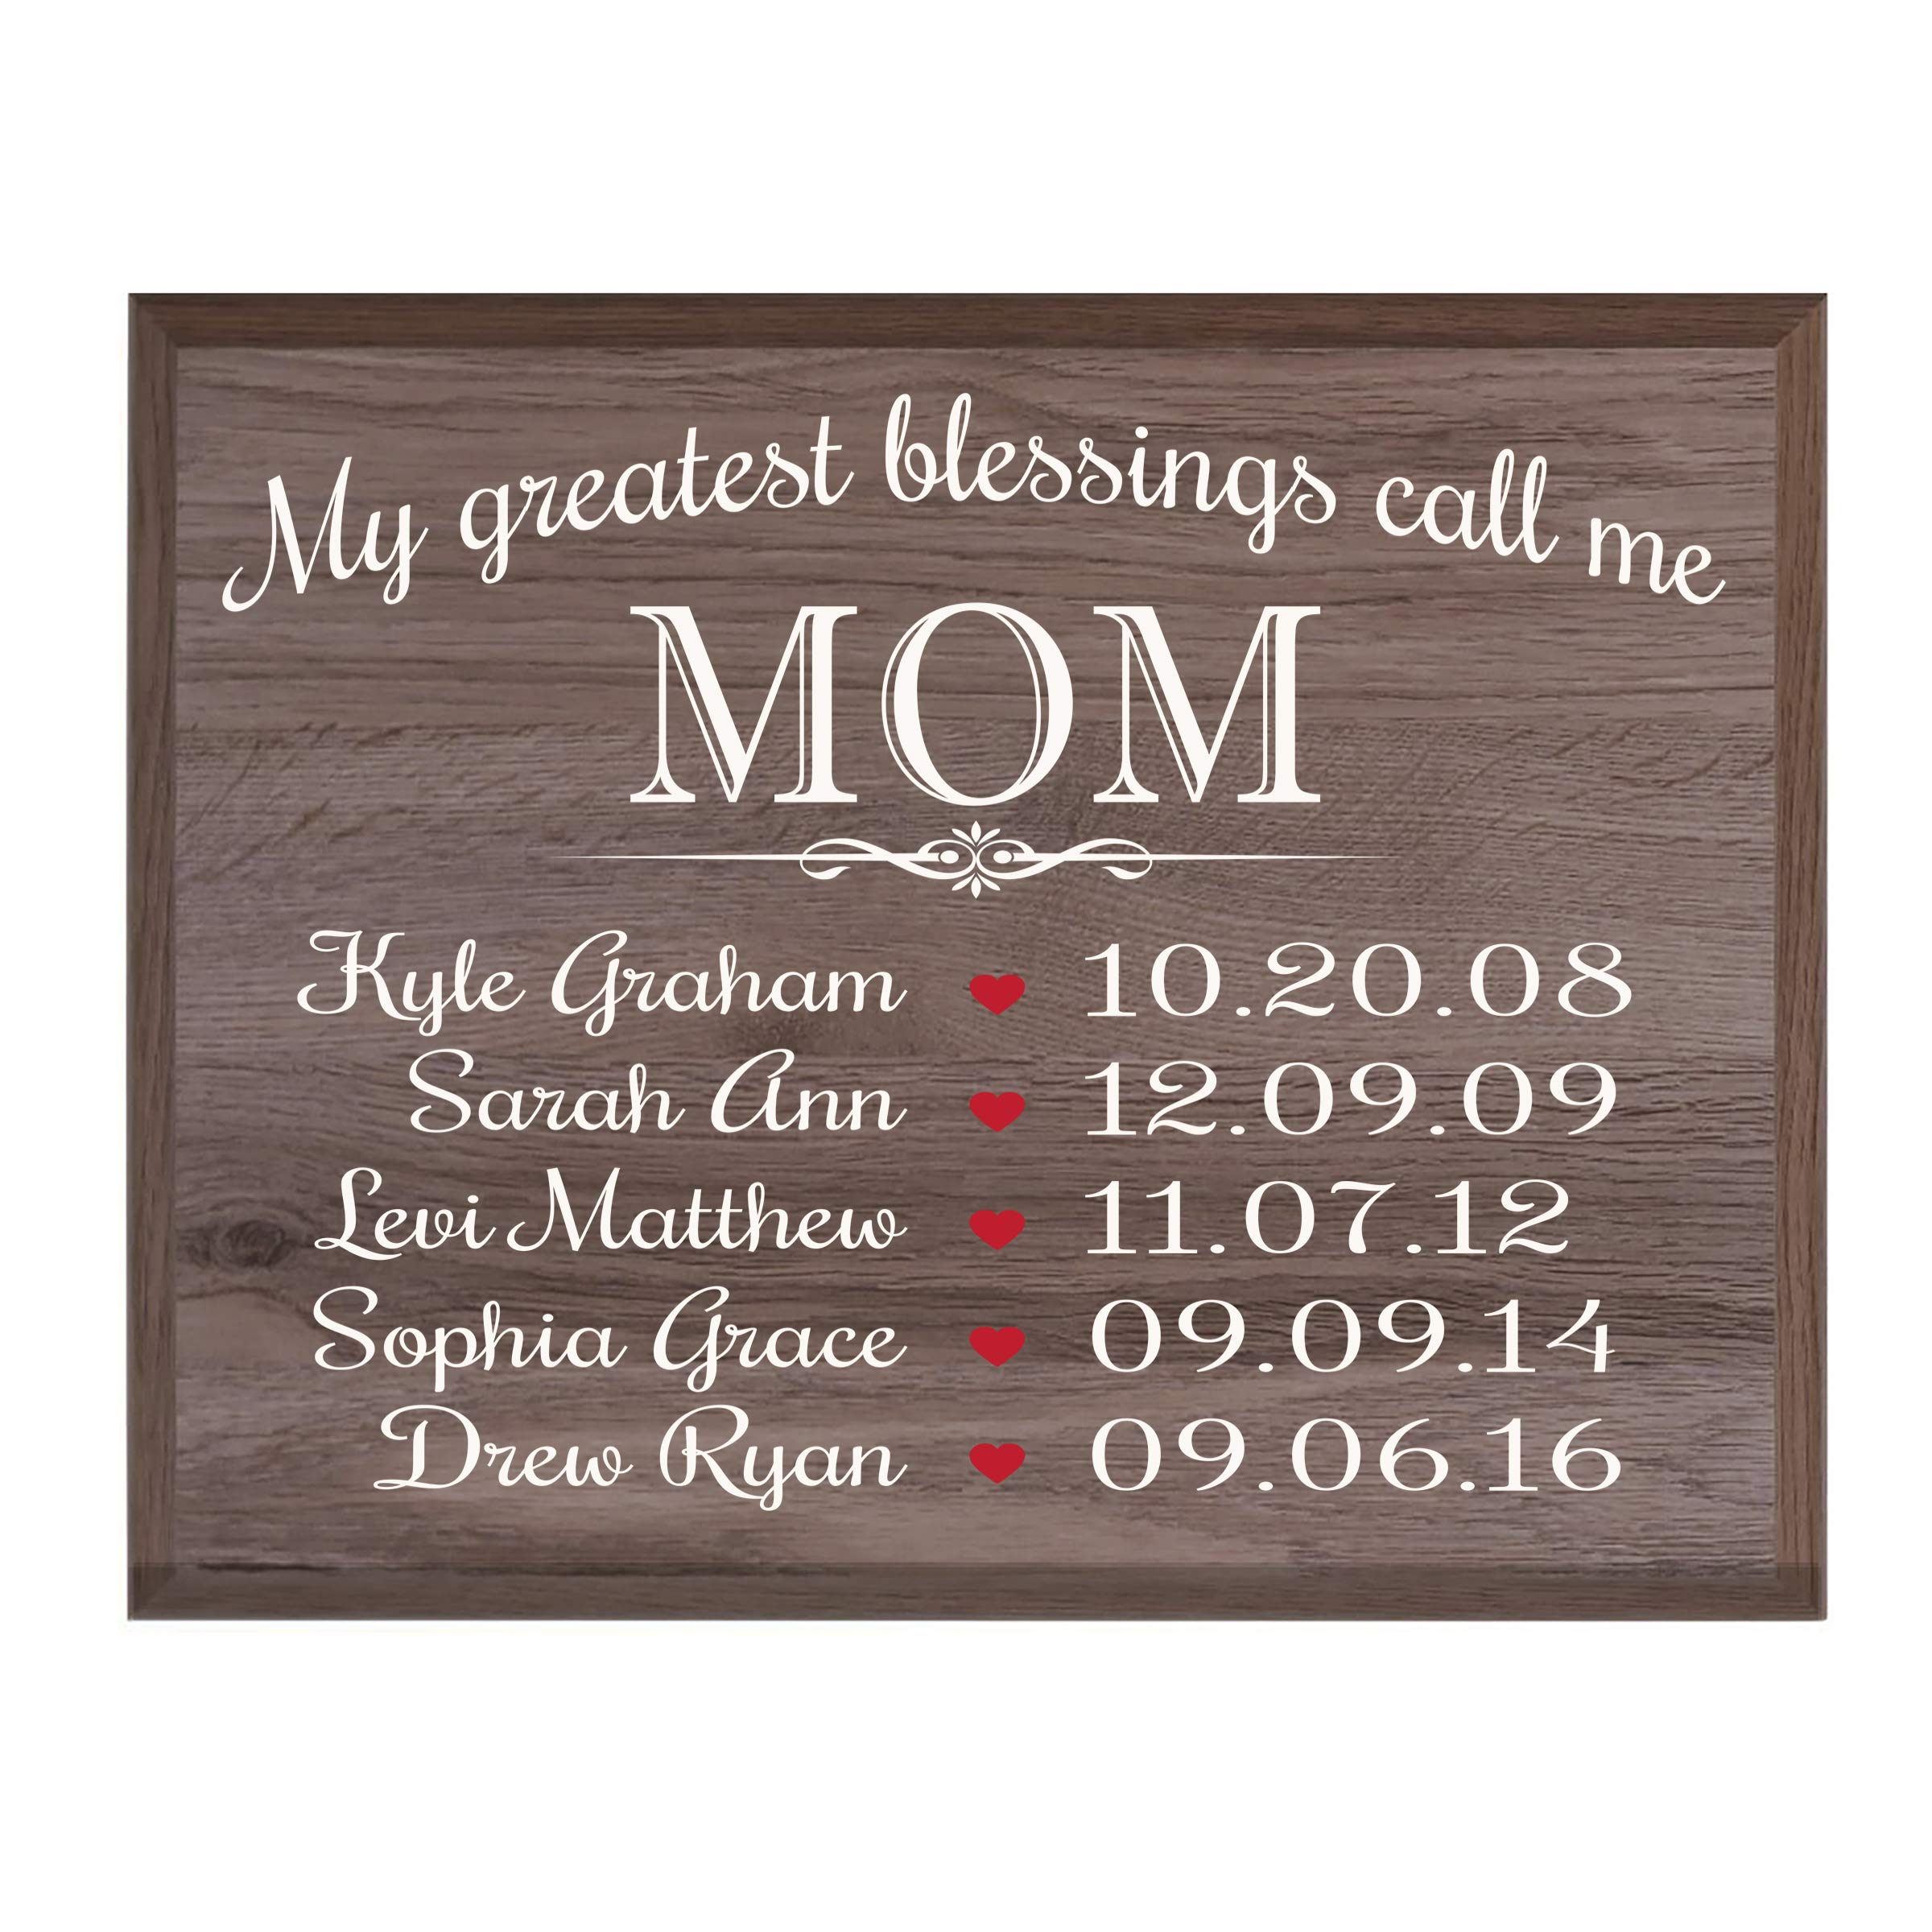 LifeSong Milestones Personalized Gifts for Mom Wall Plaque Sign with Children's Names Birth Dates to Remember My Greatest Blessings Call me Mom (Salt Oak)